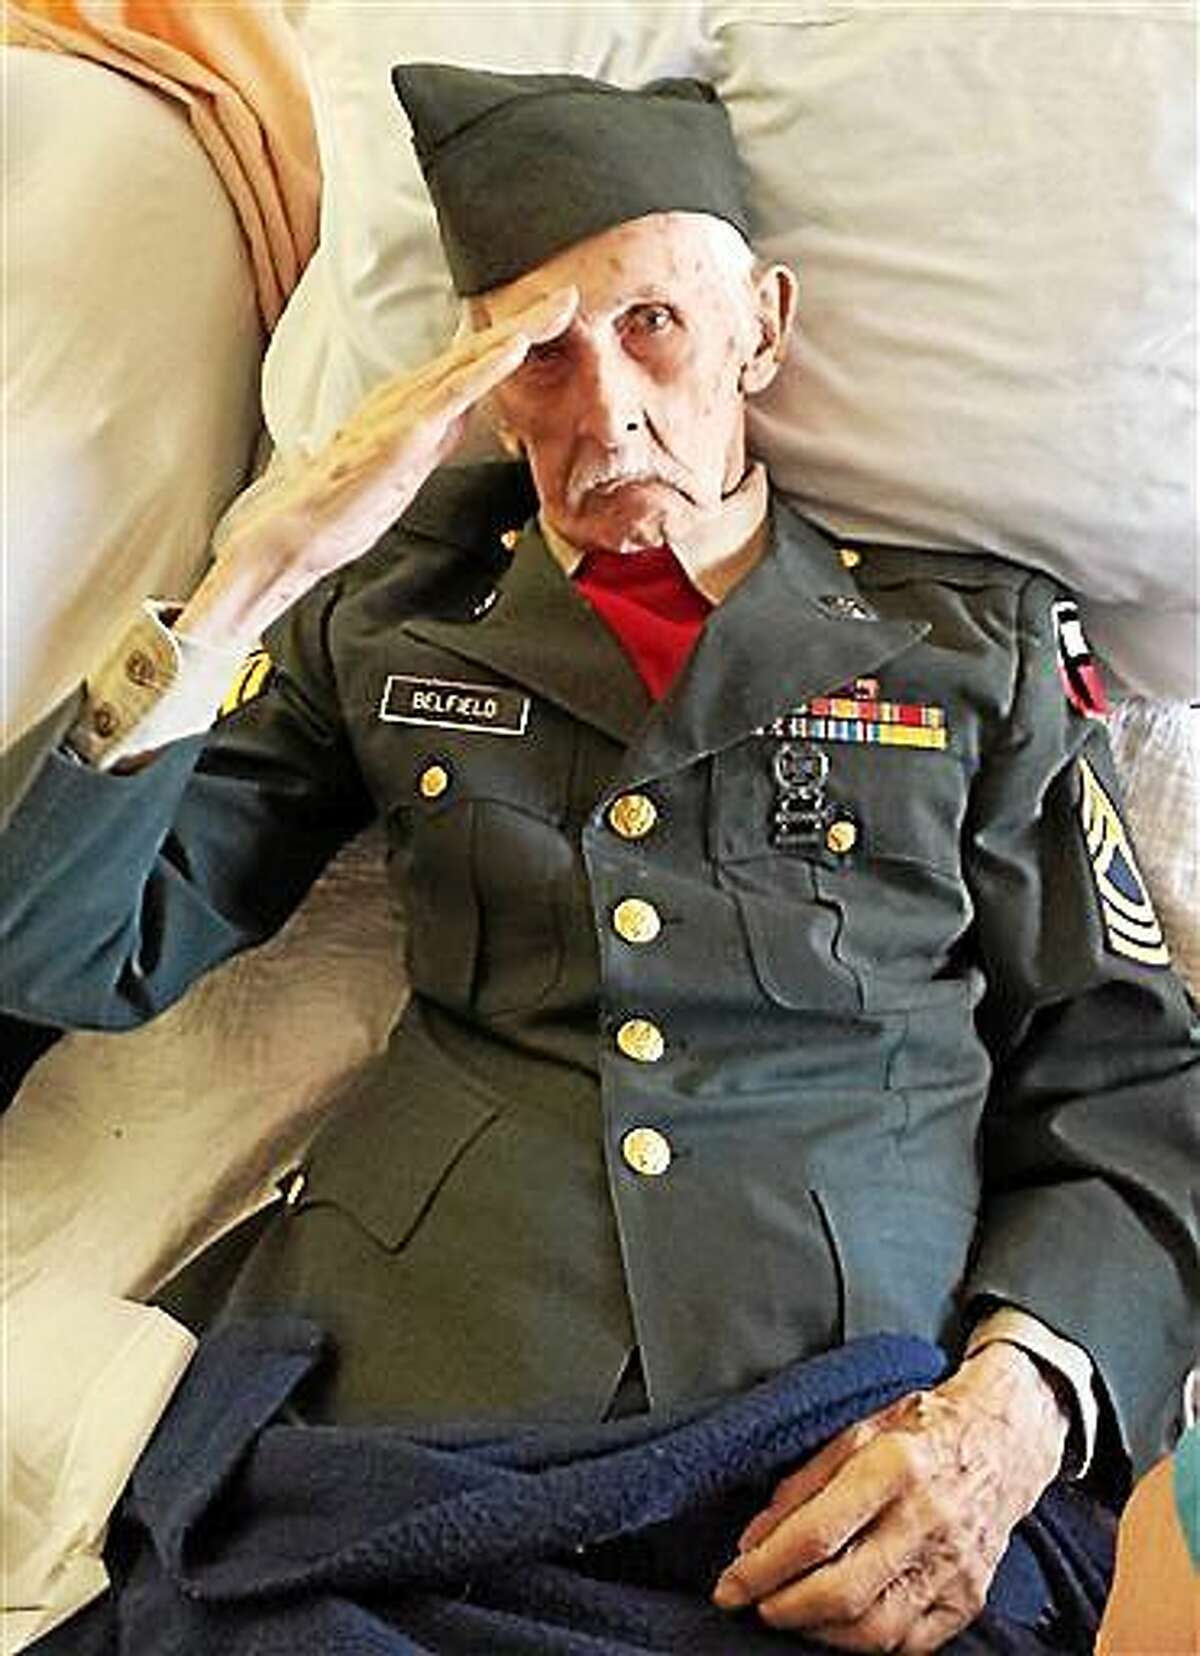 This Nov. 11, 2014 photo provided courtesy of Nancy McKiernan of Baptist Health Nursing and Rehabilitation Center in Glenville, N.Y., shows 98-year-old World War II veteran Justus Belfield saluting on Veterans Day. The Daily Gazette of Schenectady reports Belfield had worn his Army uniform every Veterans Day since he and his wife moved into the nursing home outside Albany several years ago. On Tuesday, the former master sergeant wasn't able to get out of bed to participate in the facility's Veterans Day festivities, so he had the staff dress him in his uniform. Belfield passed away the next day. (AP Photo/Courtesy of Nancy McKiernan/Baptist Health Nursing and Rehabilitation Center)